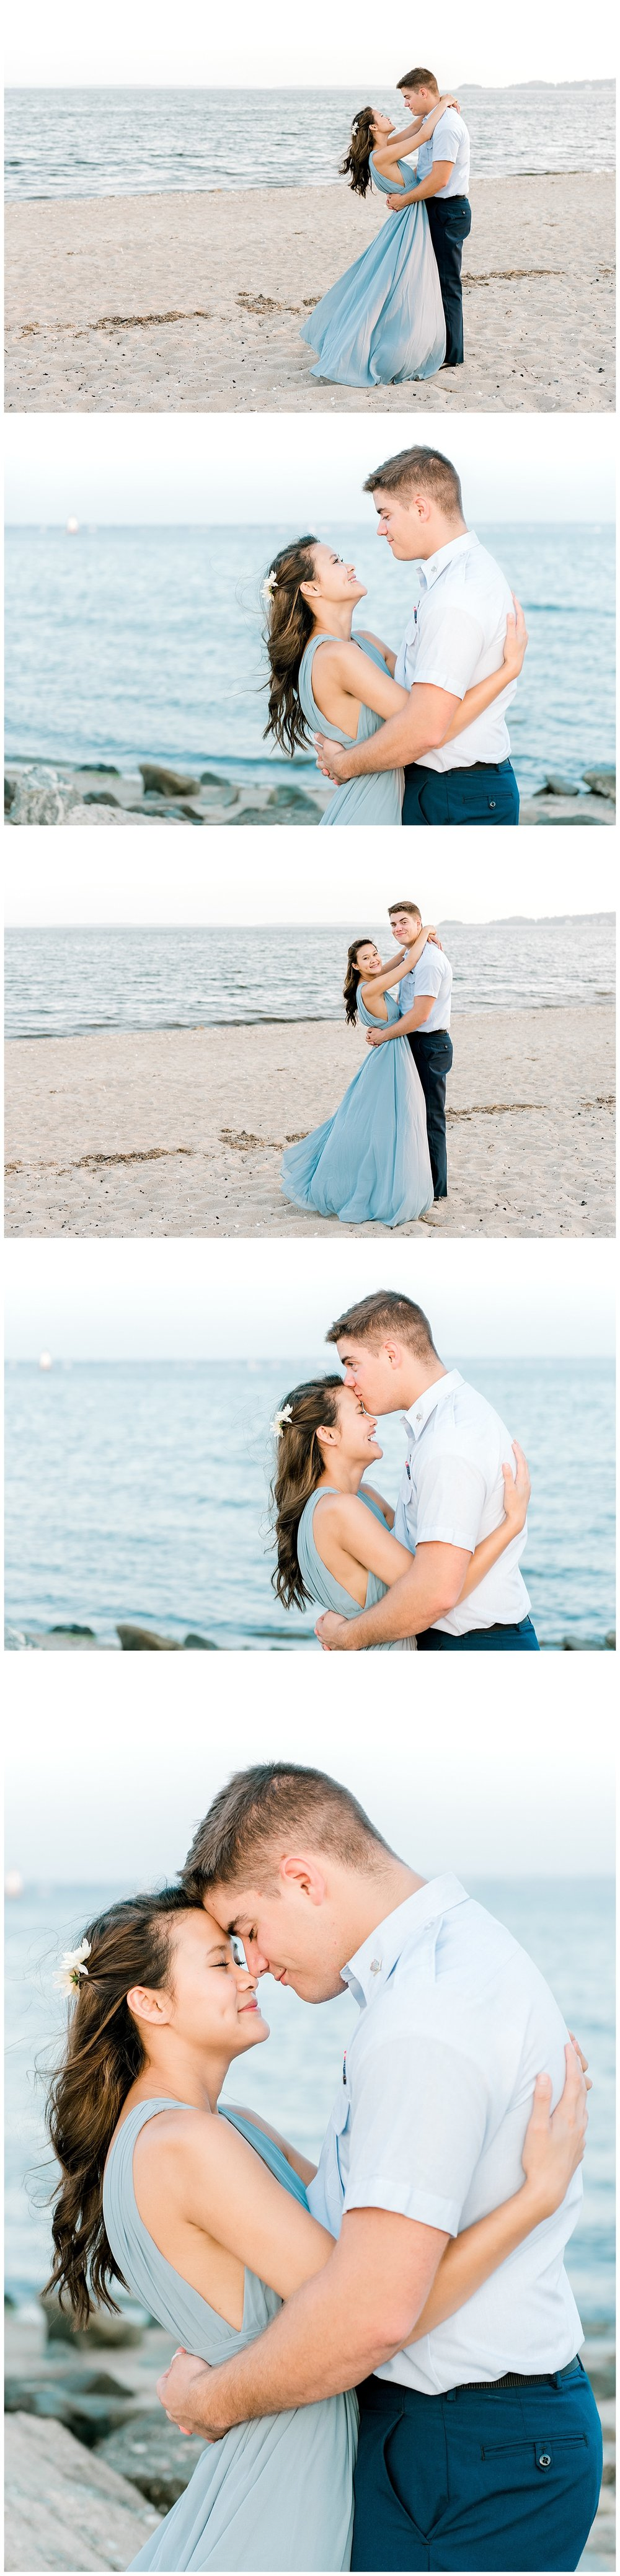 august18-rhode-island-engagement-photography-field-couples-portraits-beach-warwick-RI-13.jpg